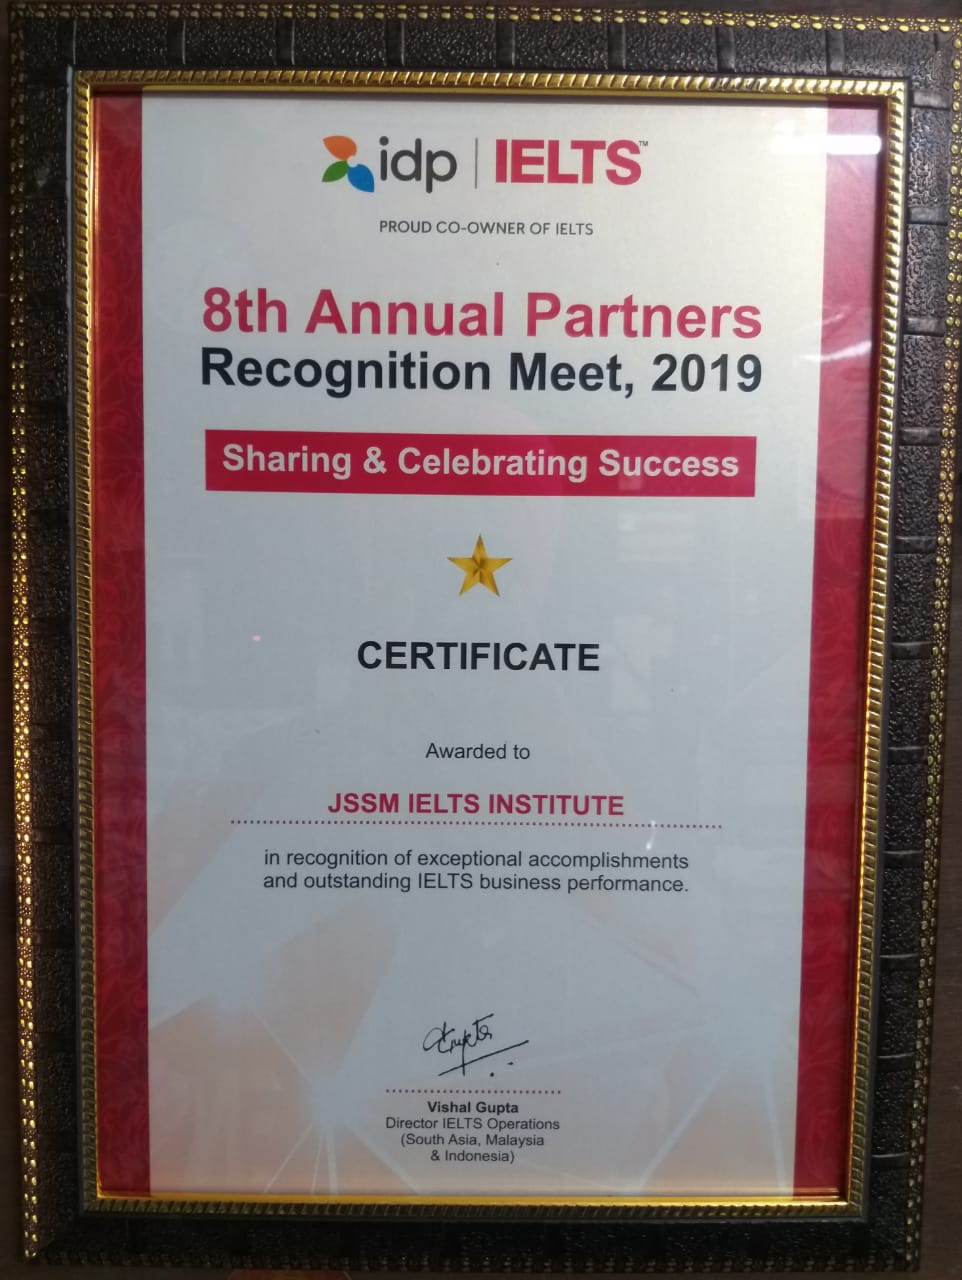 JSSM BEST IELTS, PTE & CELPIP COACHING INSTITUTE IN KHARAR | JSSM Best IELTS,PTE Spoken English institute | #awarded IELTS coaching institute  # best ielts institute in this area #awarded by idp - GL41677